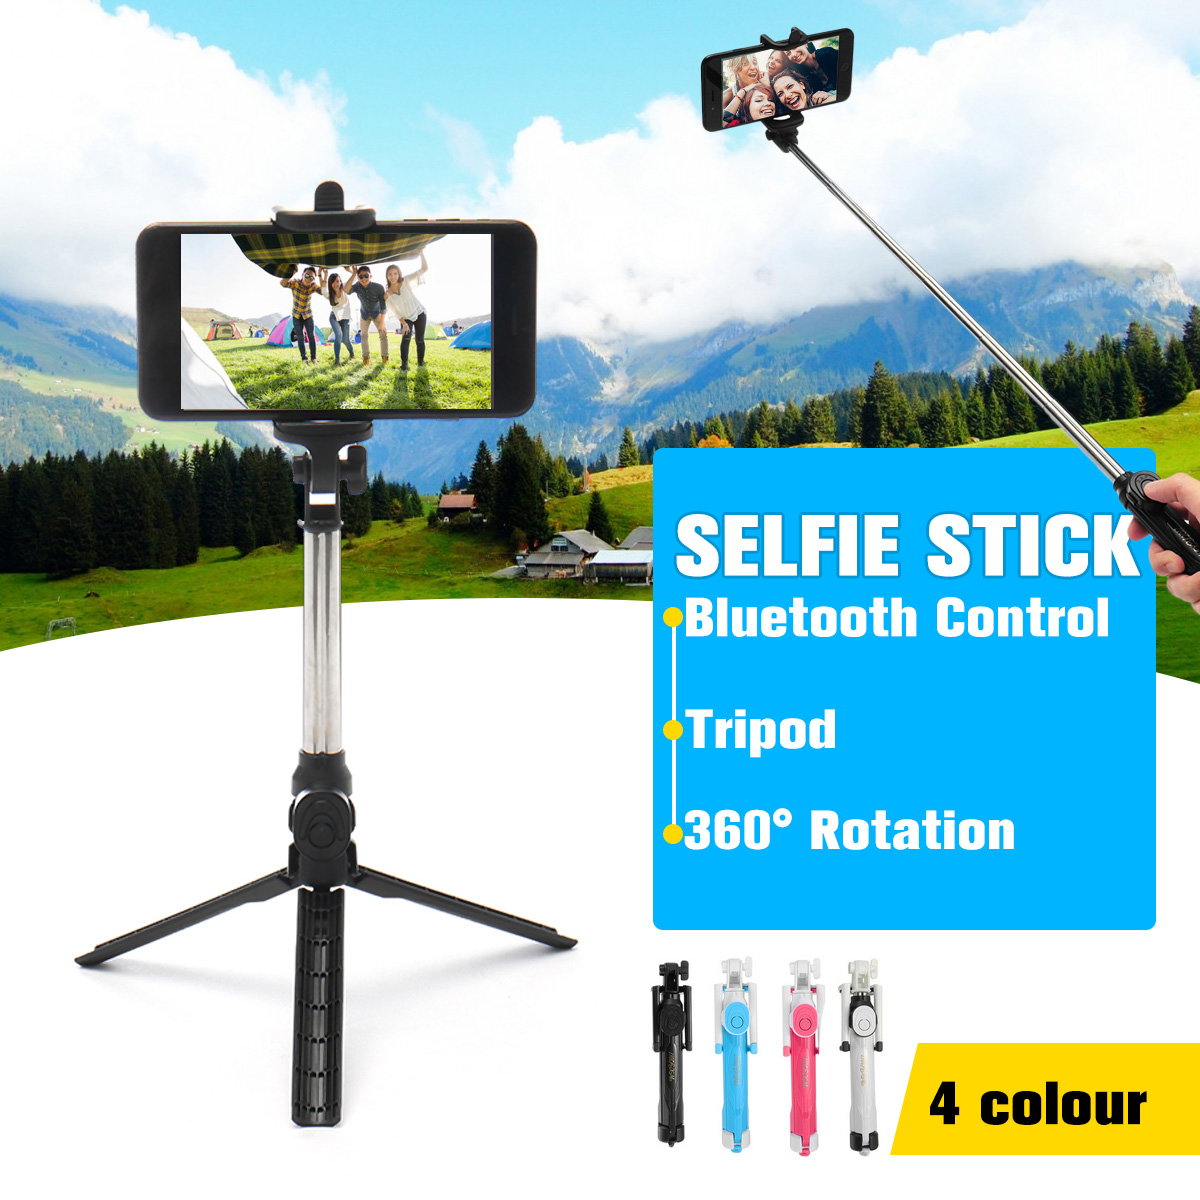 Extendable Wireless Remote Selfie Stick Mini Tripod with Bluetooth Controller For iPhone 5 6 7 8 Plus X Cell Smart Mobile Phone cell phone tripod with bluetooth remote control mobile phone selfie stick mini tripod for sport camera light monopod with clip